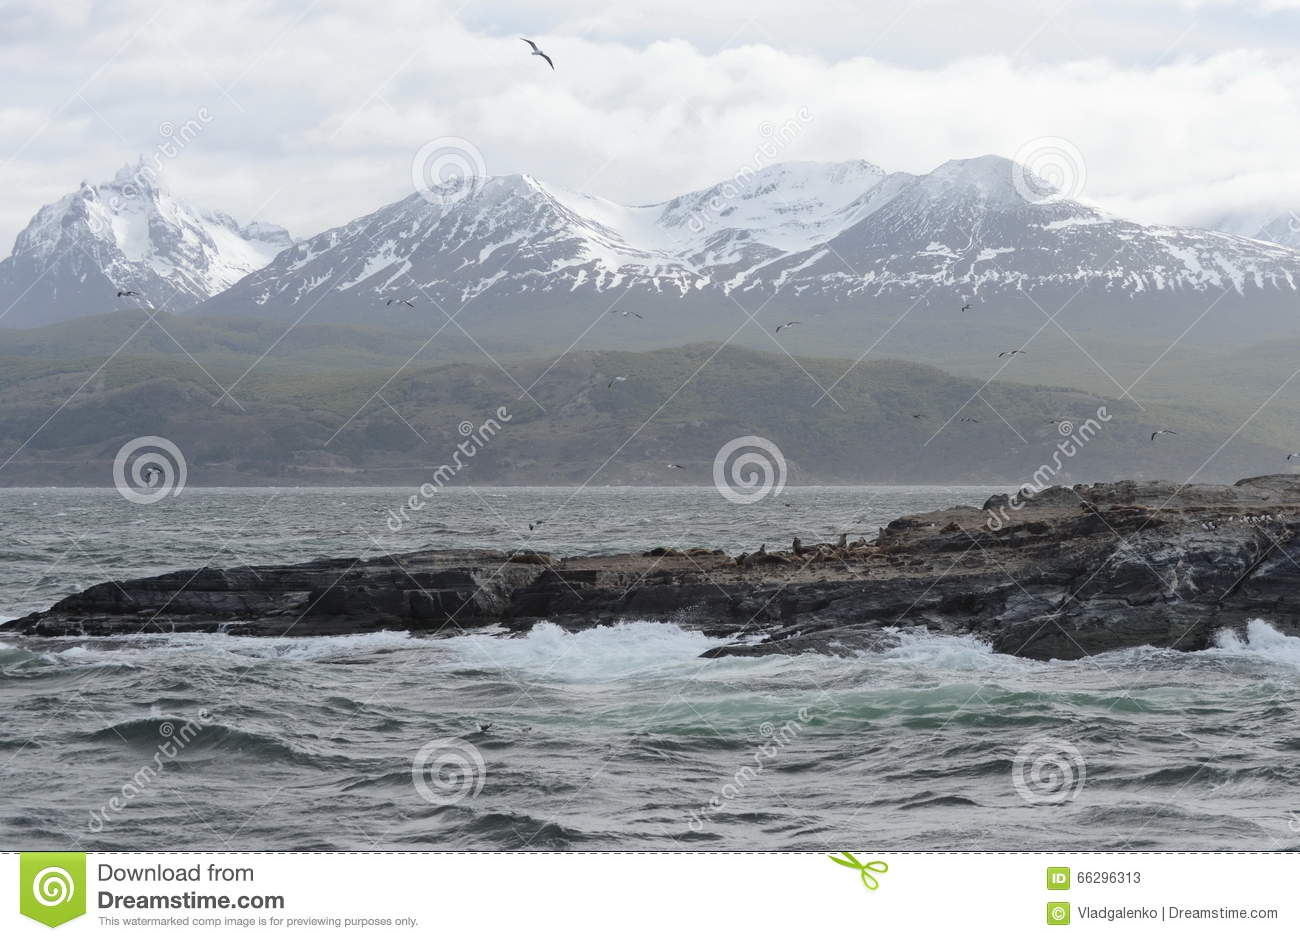 Download The Beagle Channel Separating The Main Island Of The Archipelago Of Tierra Del Fuego And Lying To The South Of The Island. Stock Image - Image of waves, south: 66296313